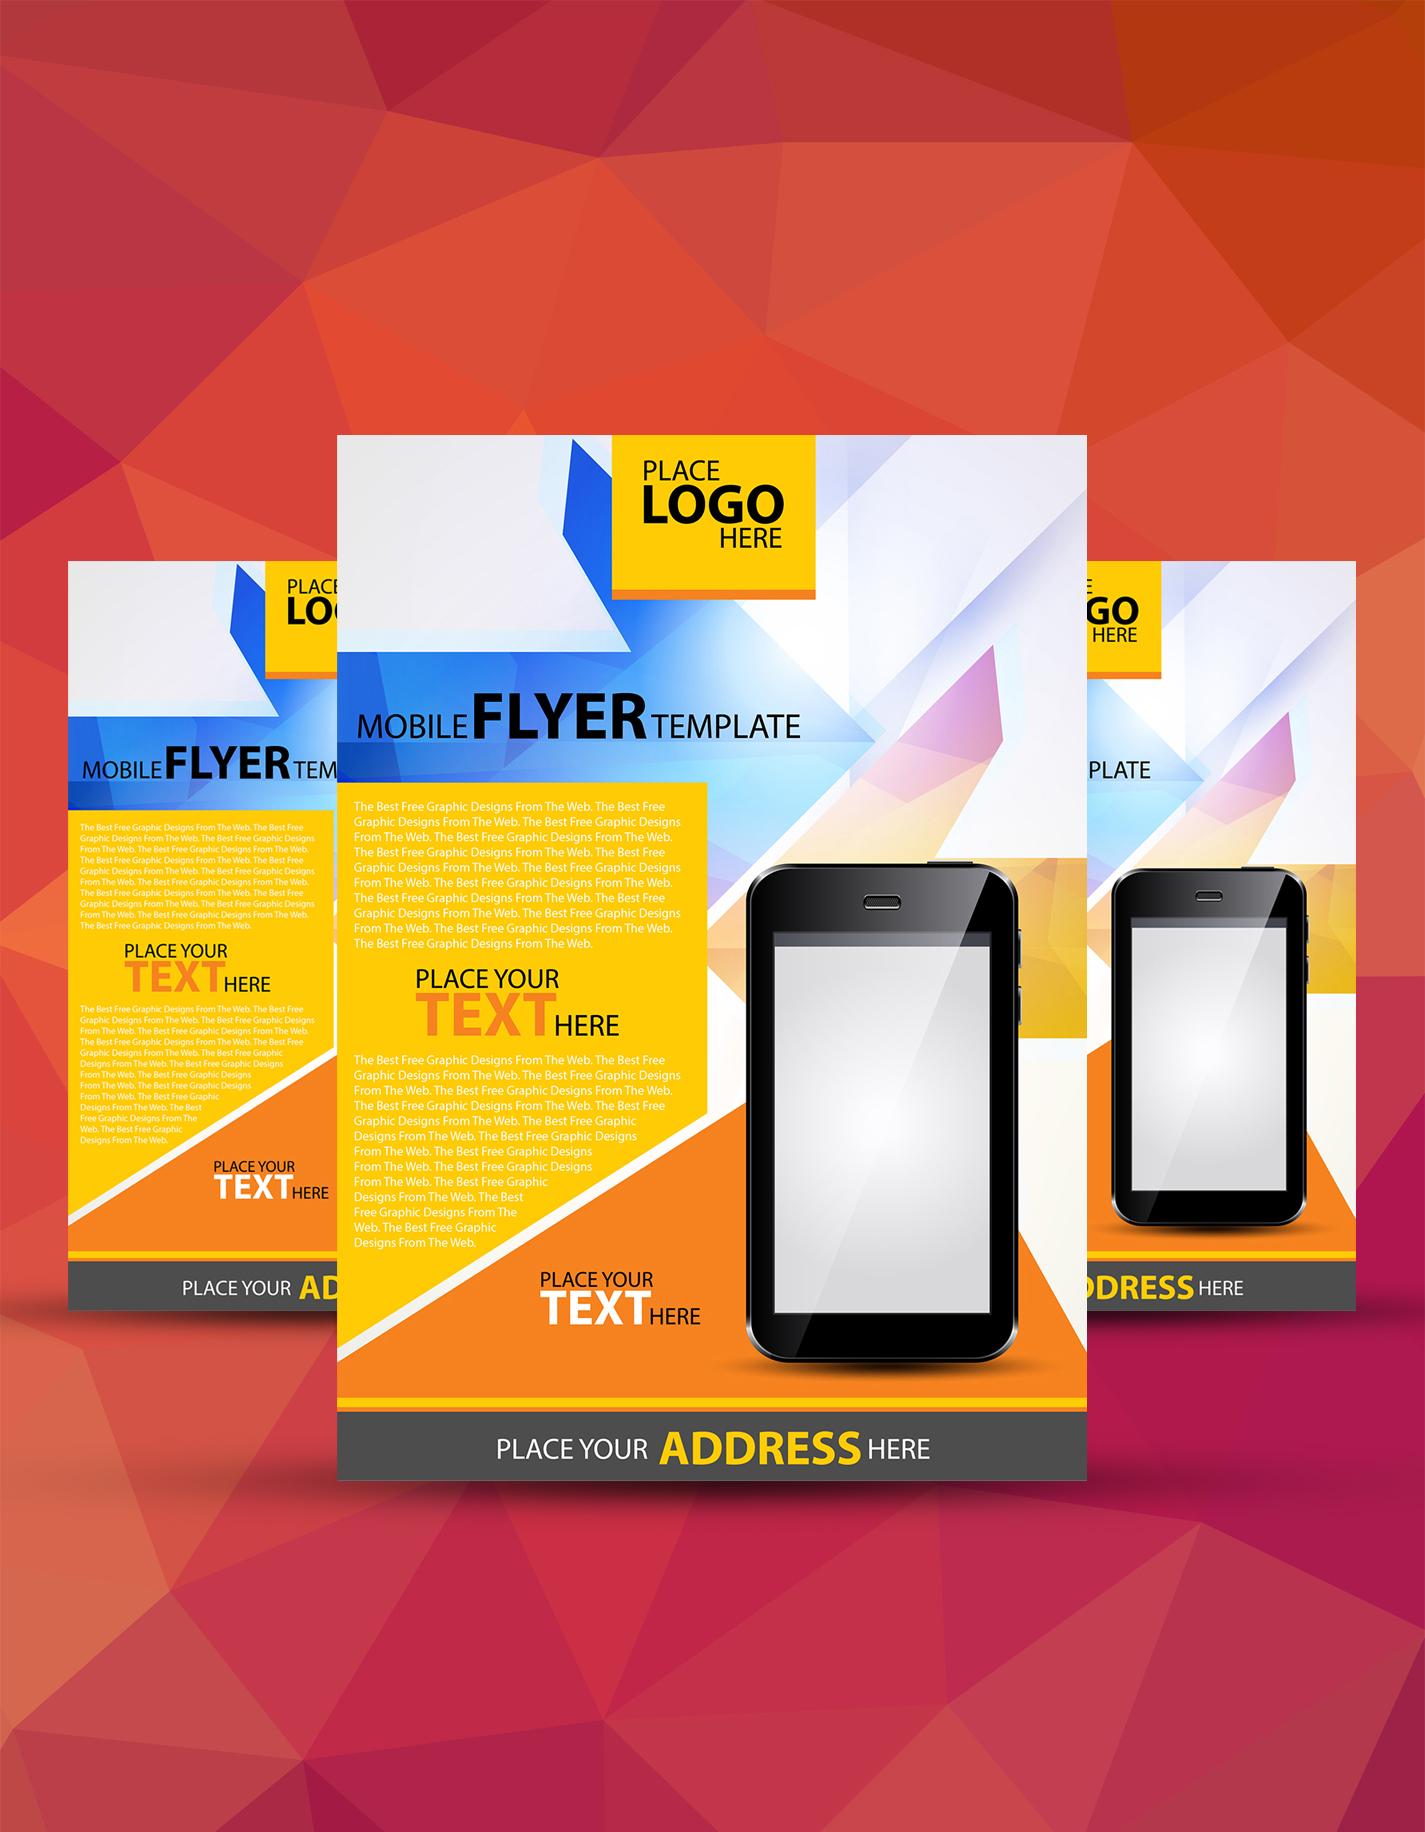 flyers templates designs for graphic designers a4 mobile flyer template